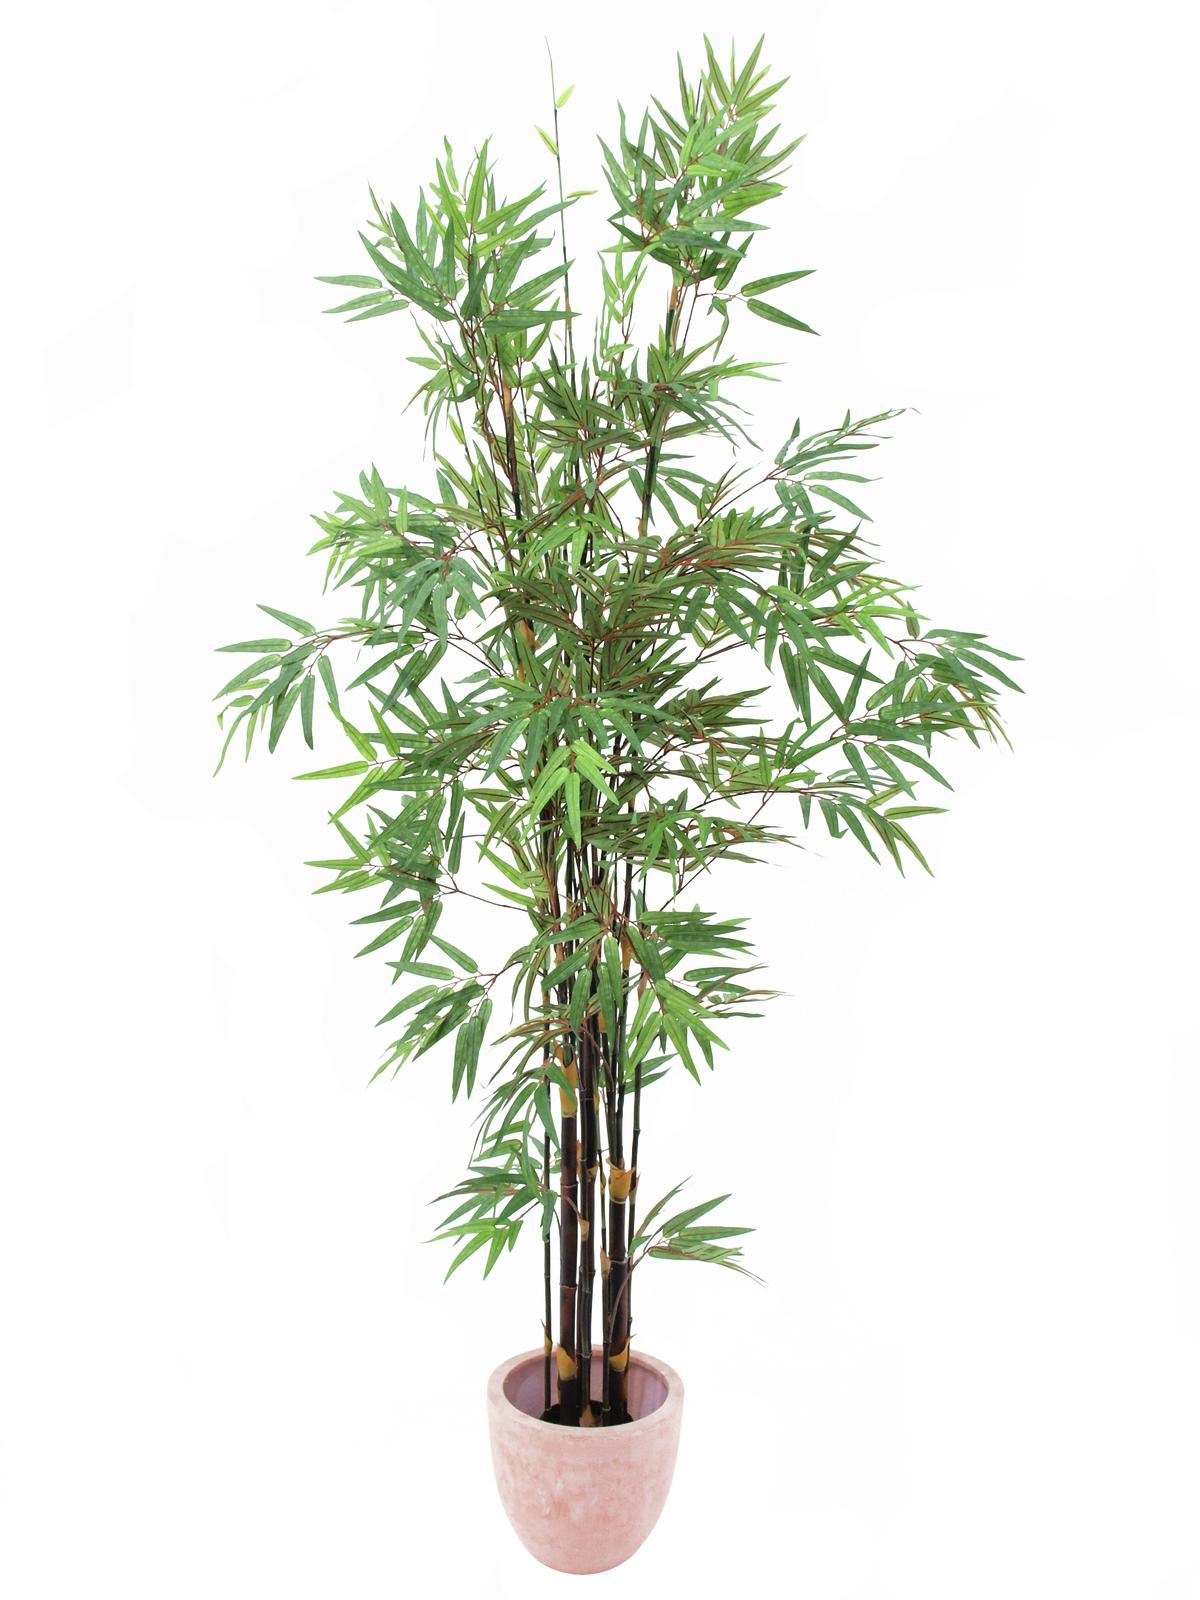 EUROPALMS pianta artificiale Albero bambù scuro, 210cm